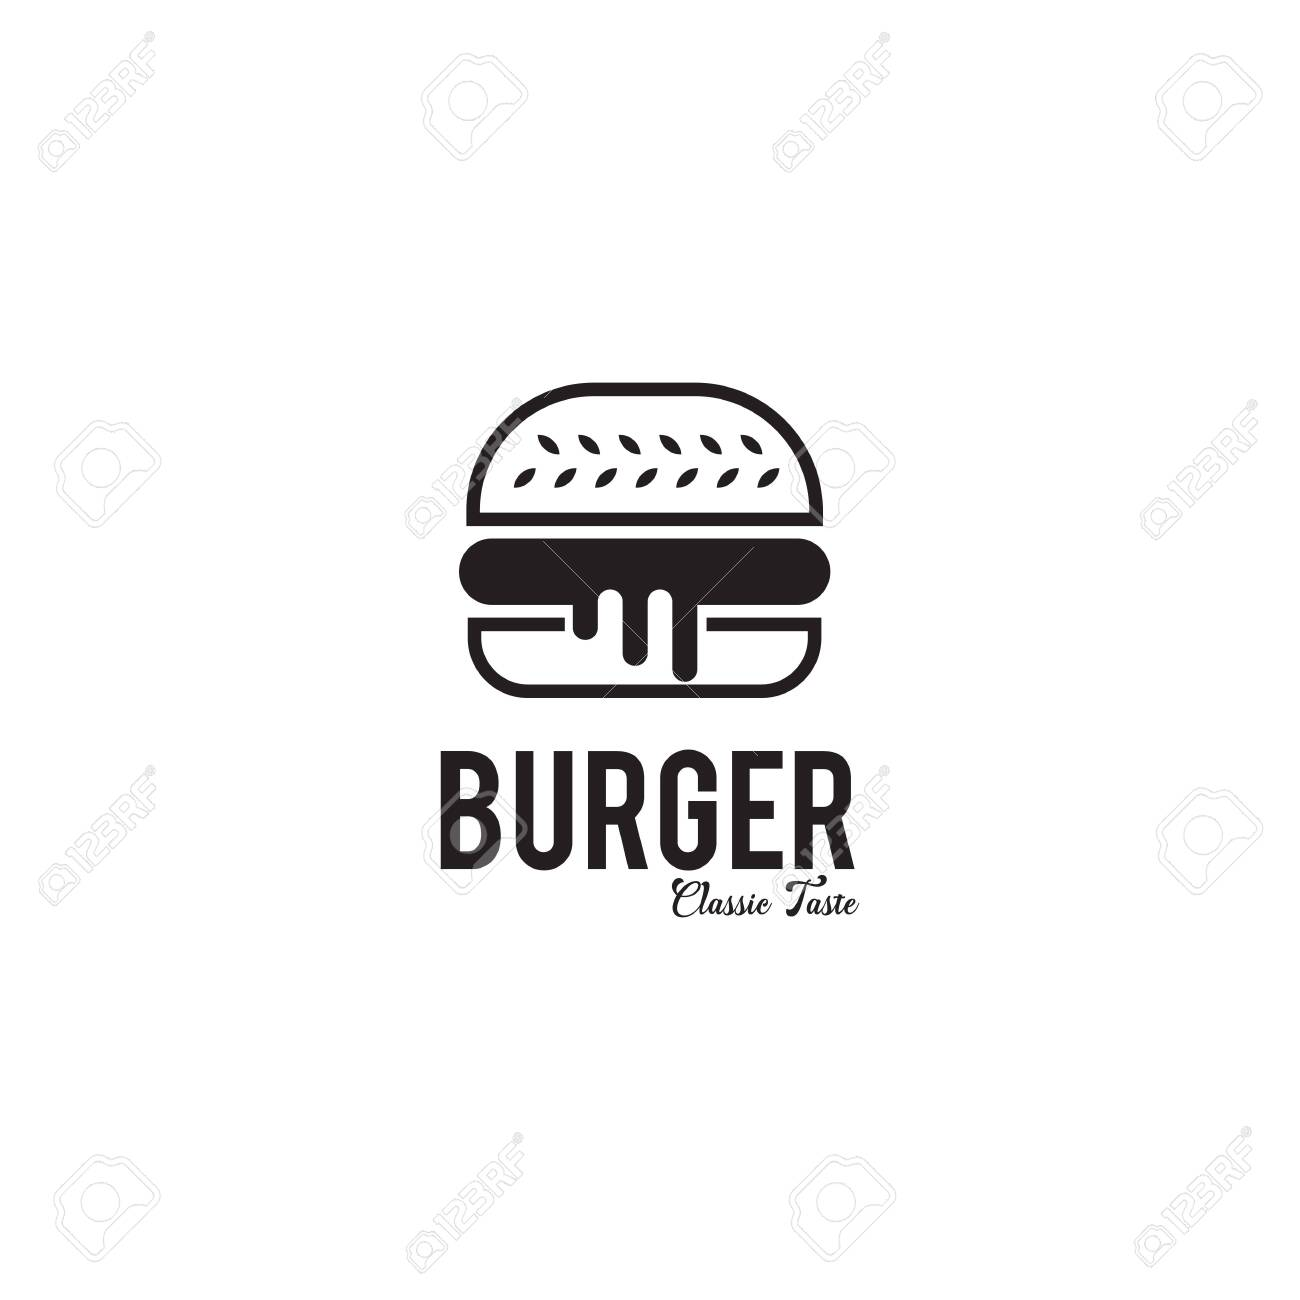 Burger Restaurant Logo Design Inspiration Vector Illustration Royalty Free Cliparts Vectors And Stock Illustration Image 129154975